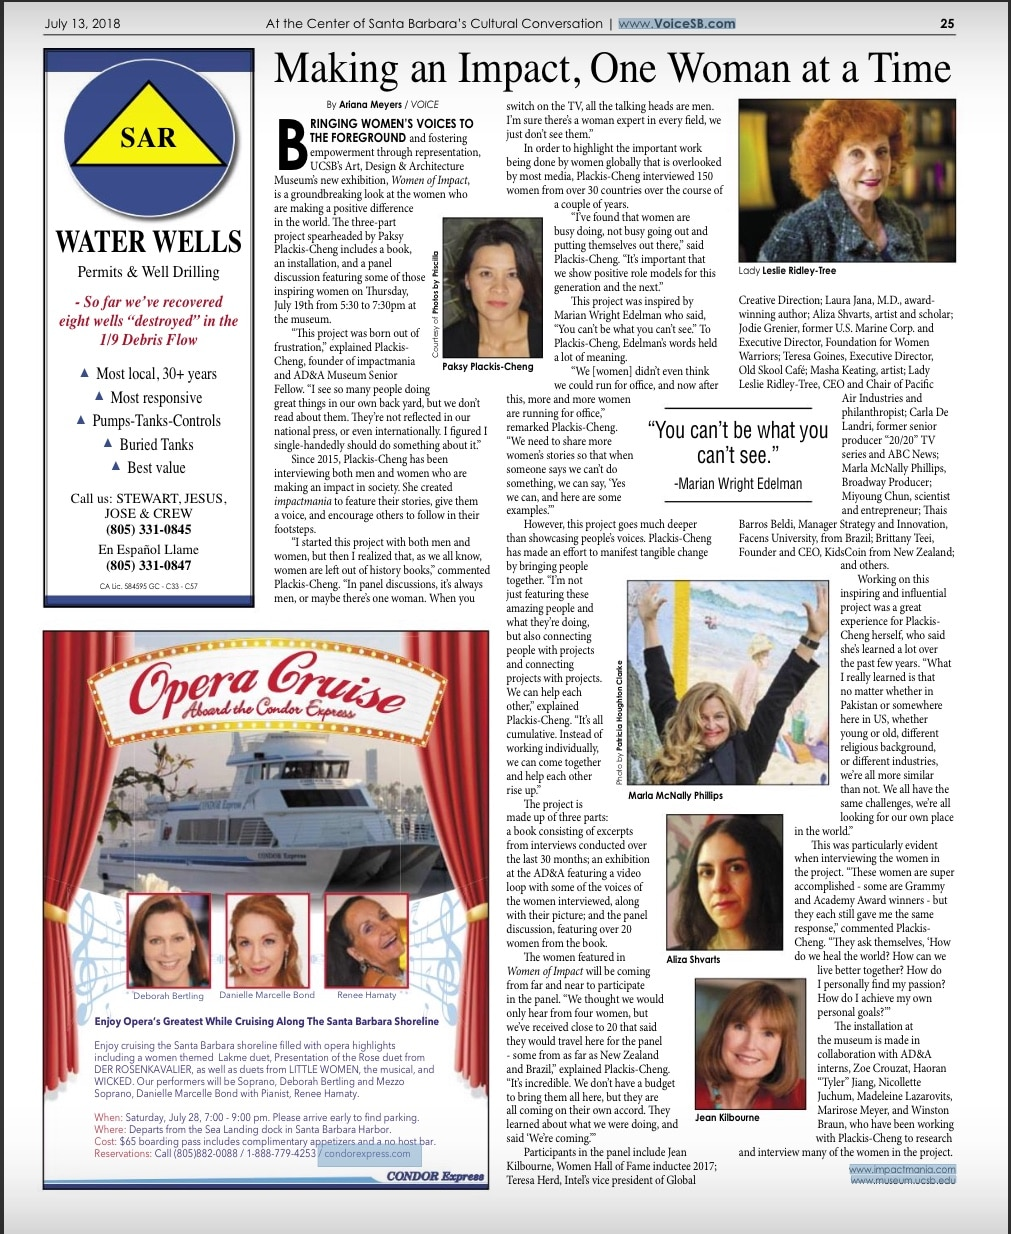 Women of Impact in The Voice Magazine. Article by Ariana Meyers.